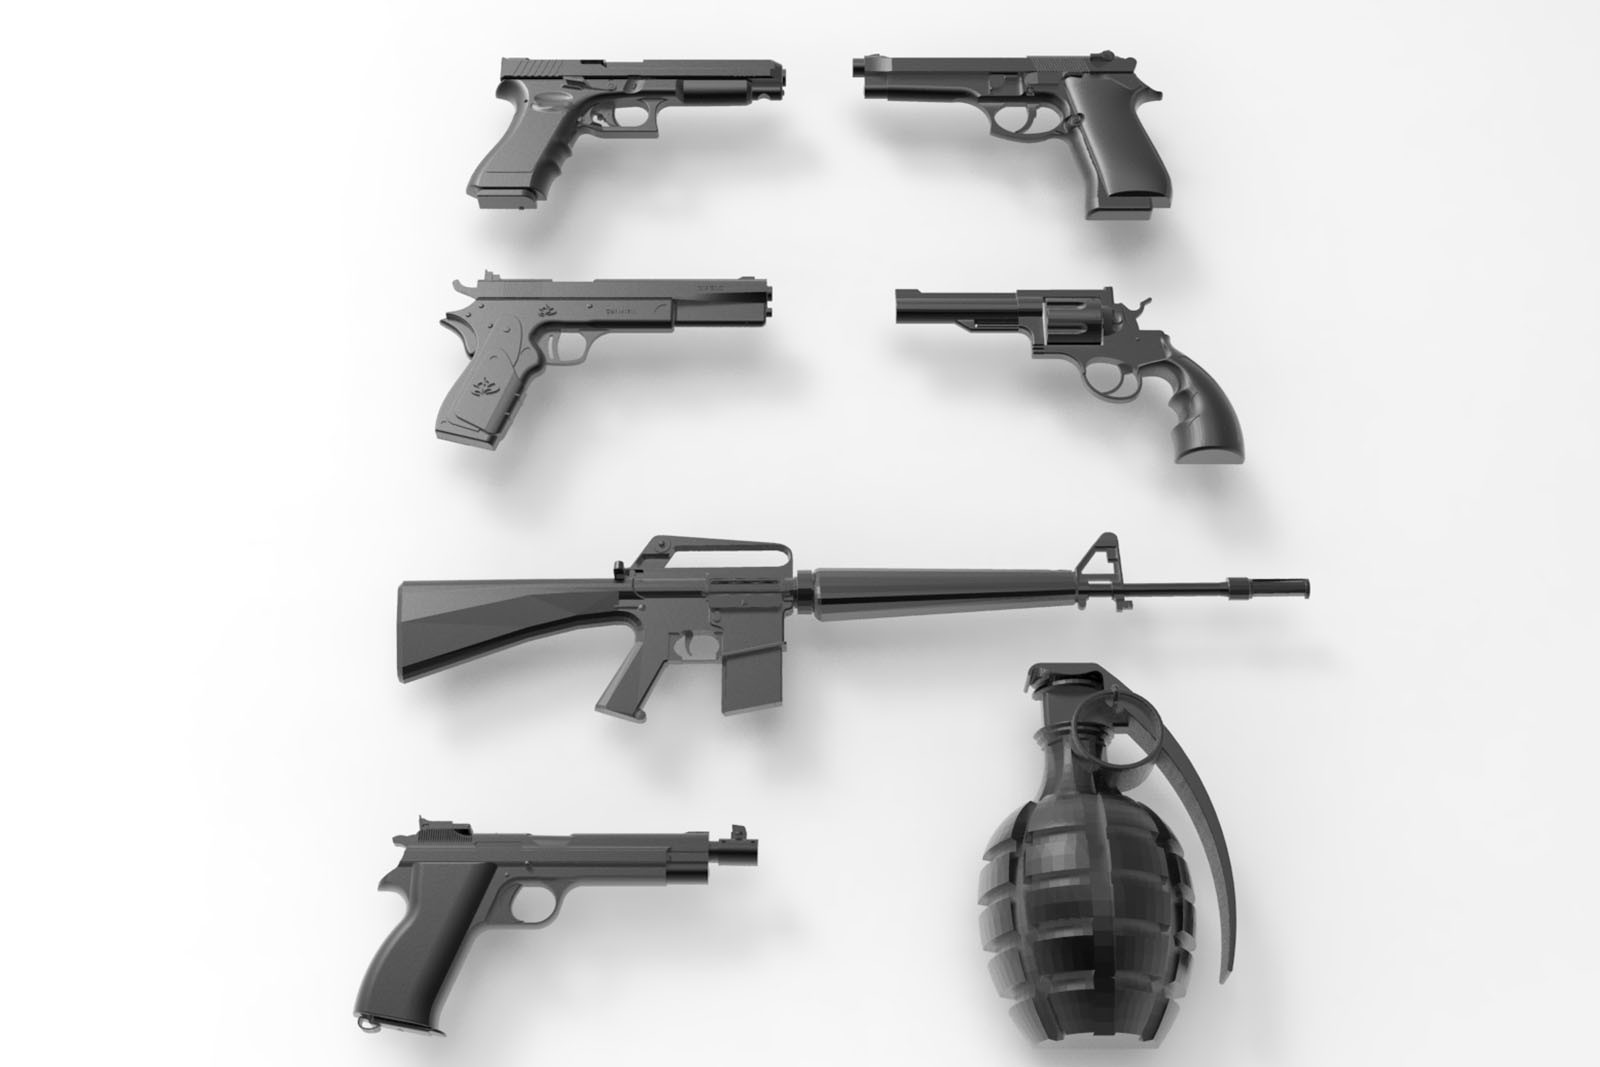 CNC A029 (Gun Collection) 7PC 3D STL Model